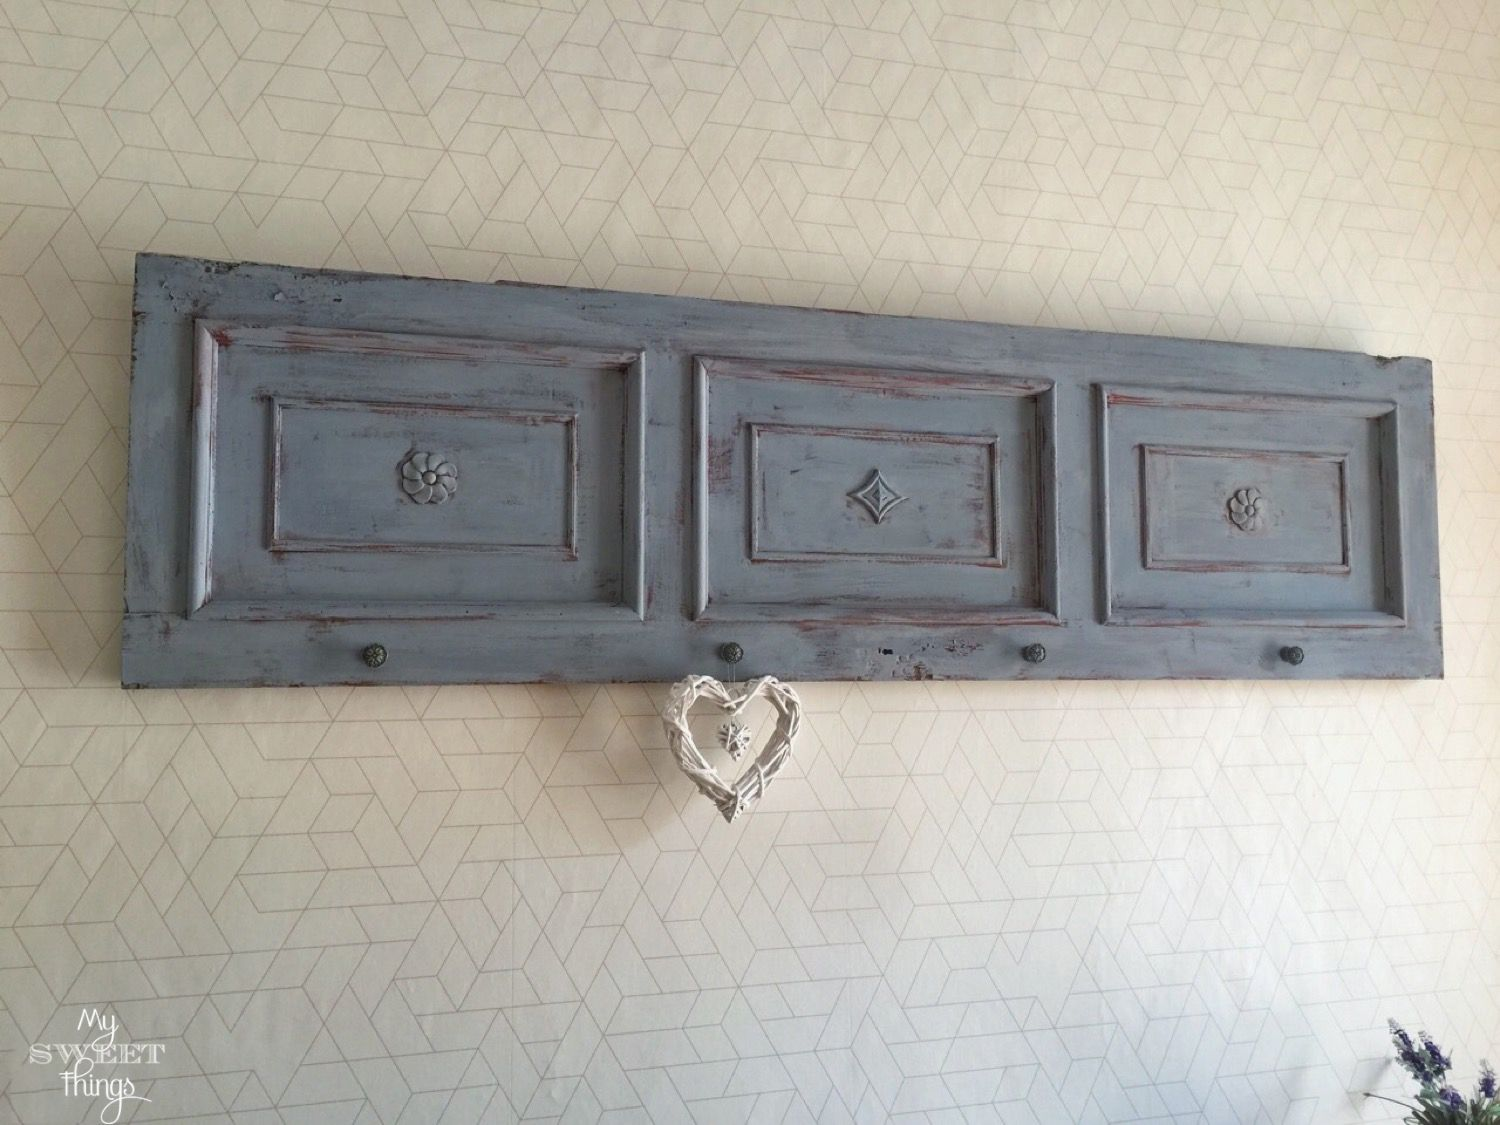 Old door idea - coat rack · Via www.sweethings.net